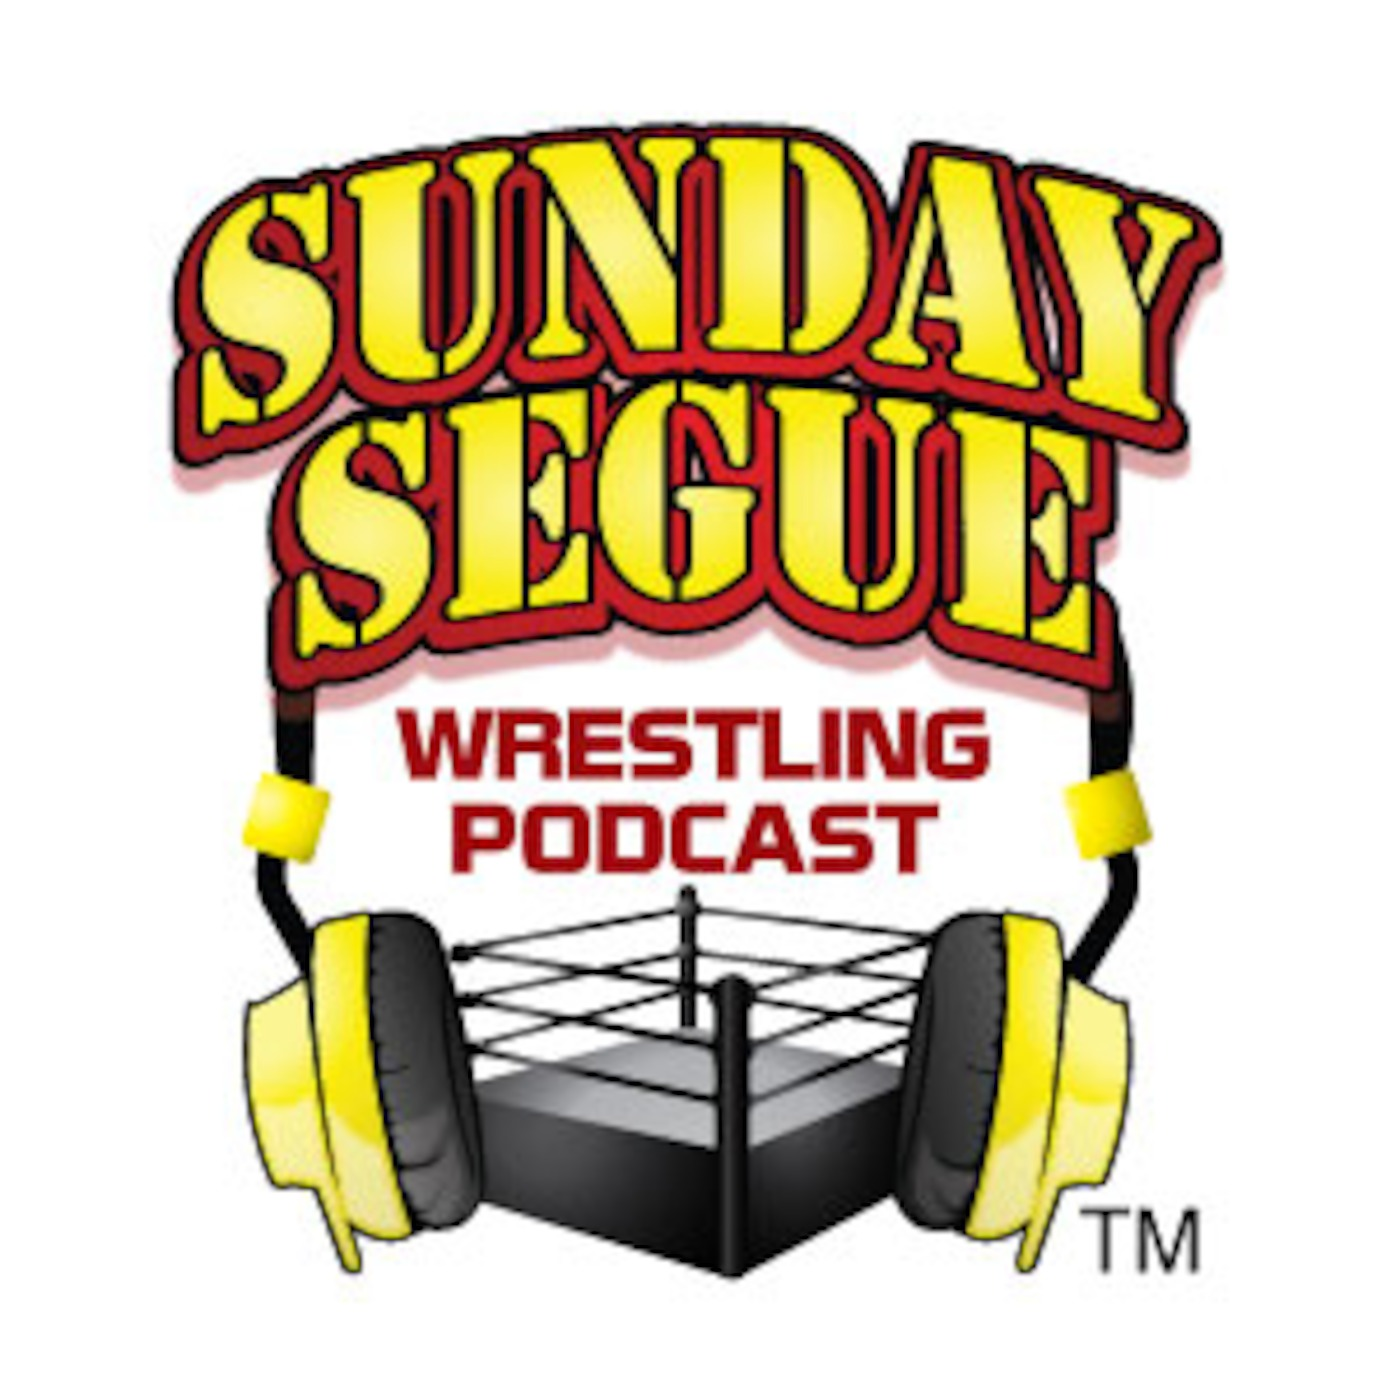 Sunday Segue Wrestling Podcast